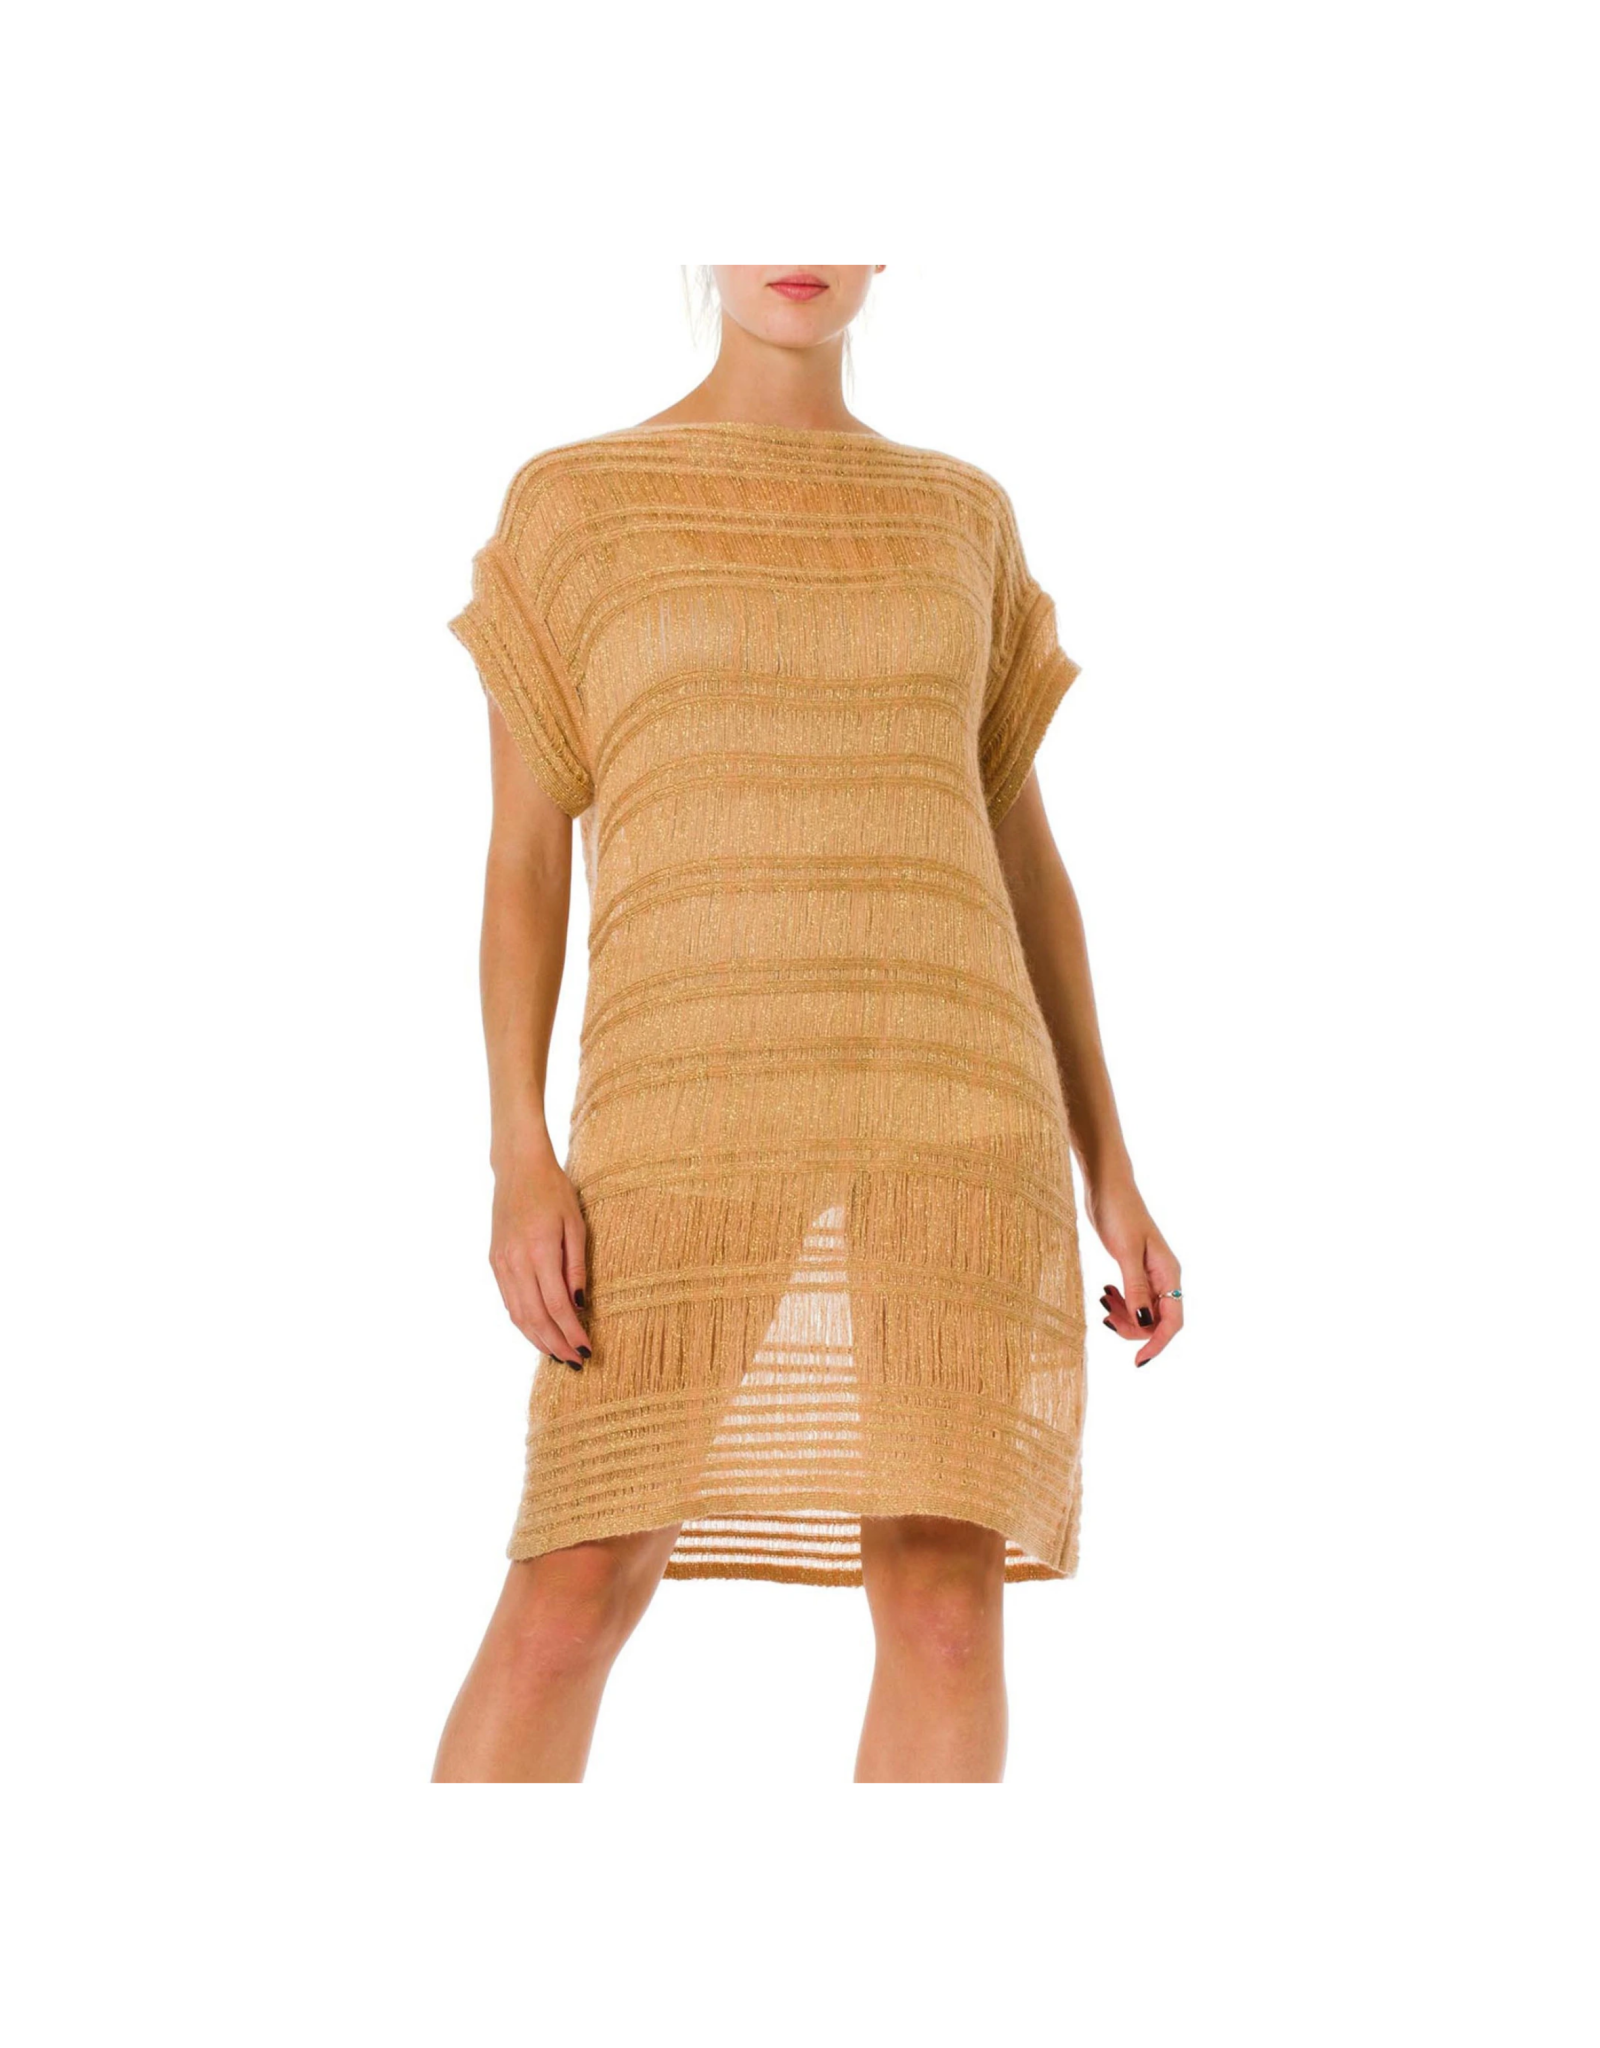 Wyld Blue Vintage Missoni Camel & Gold Knit Tunic Dress (2000s)